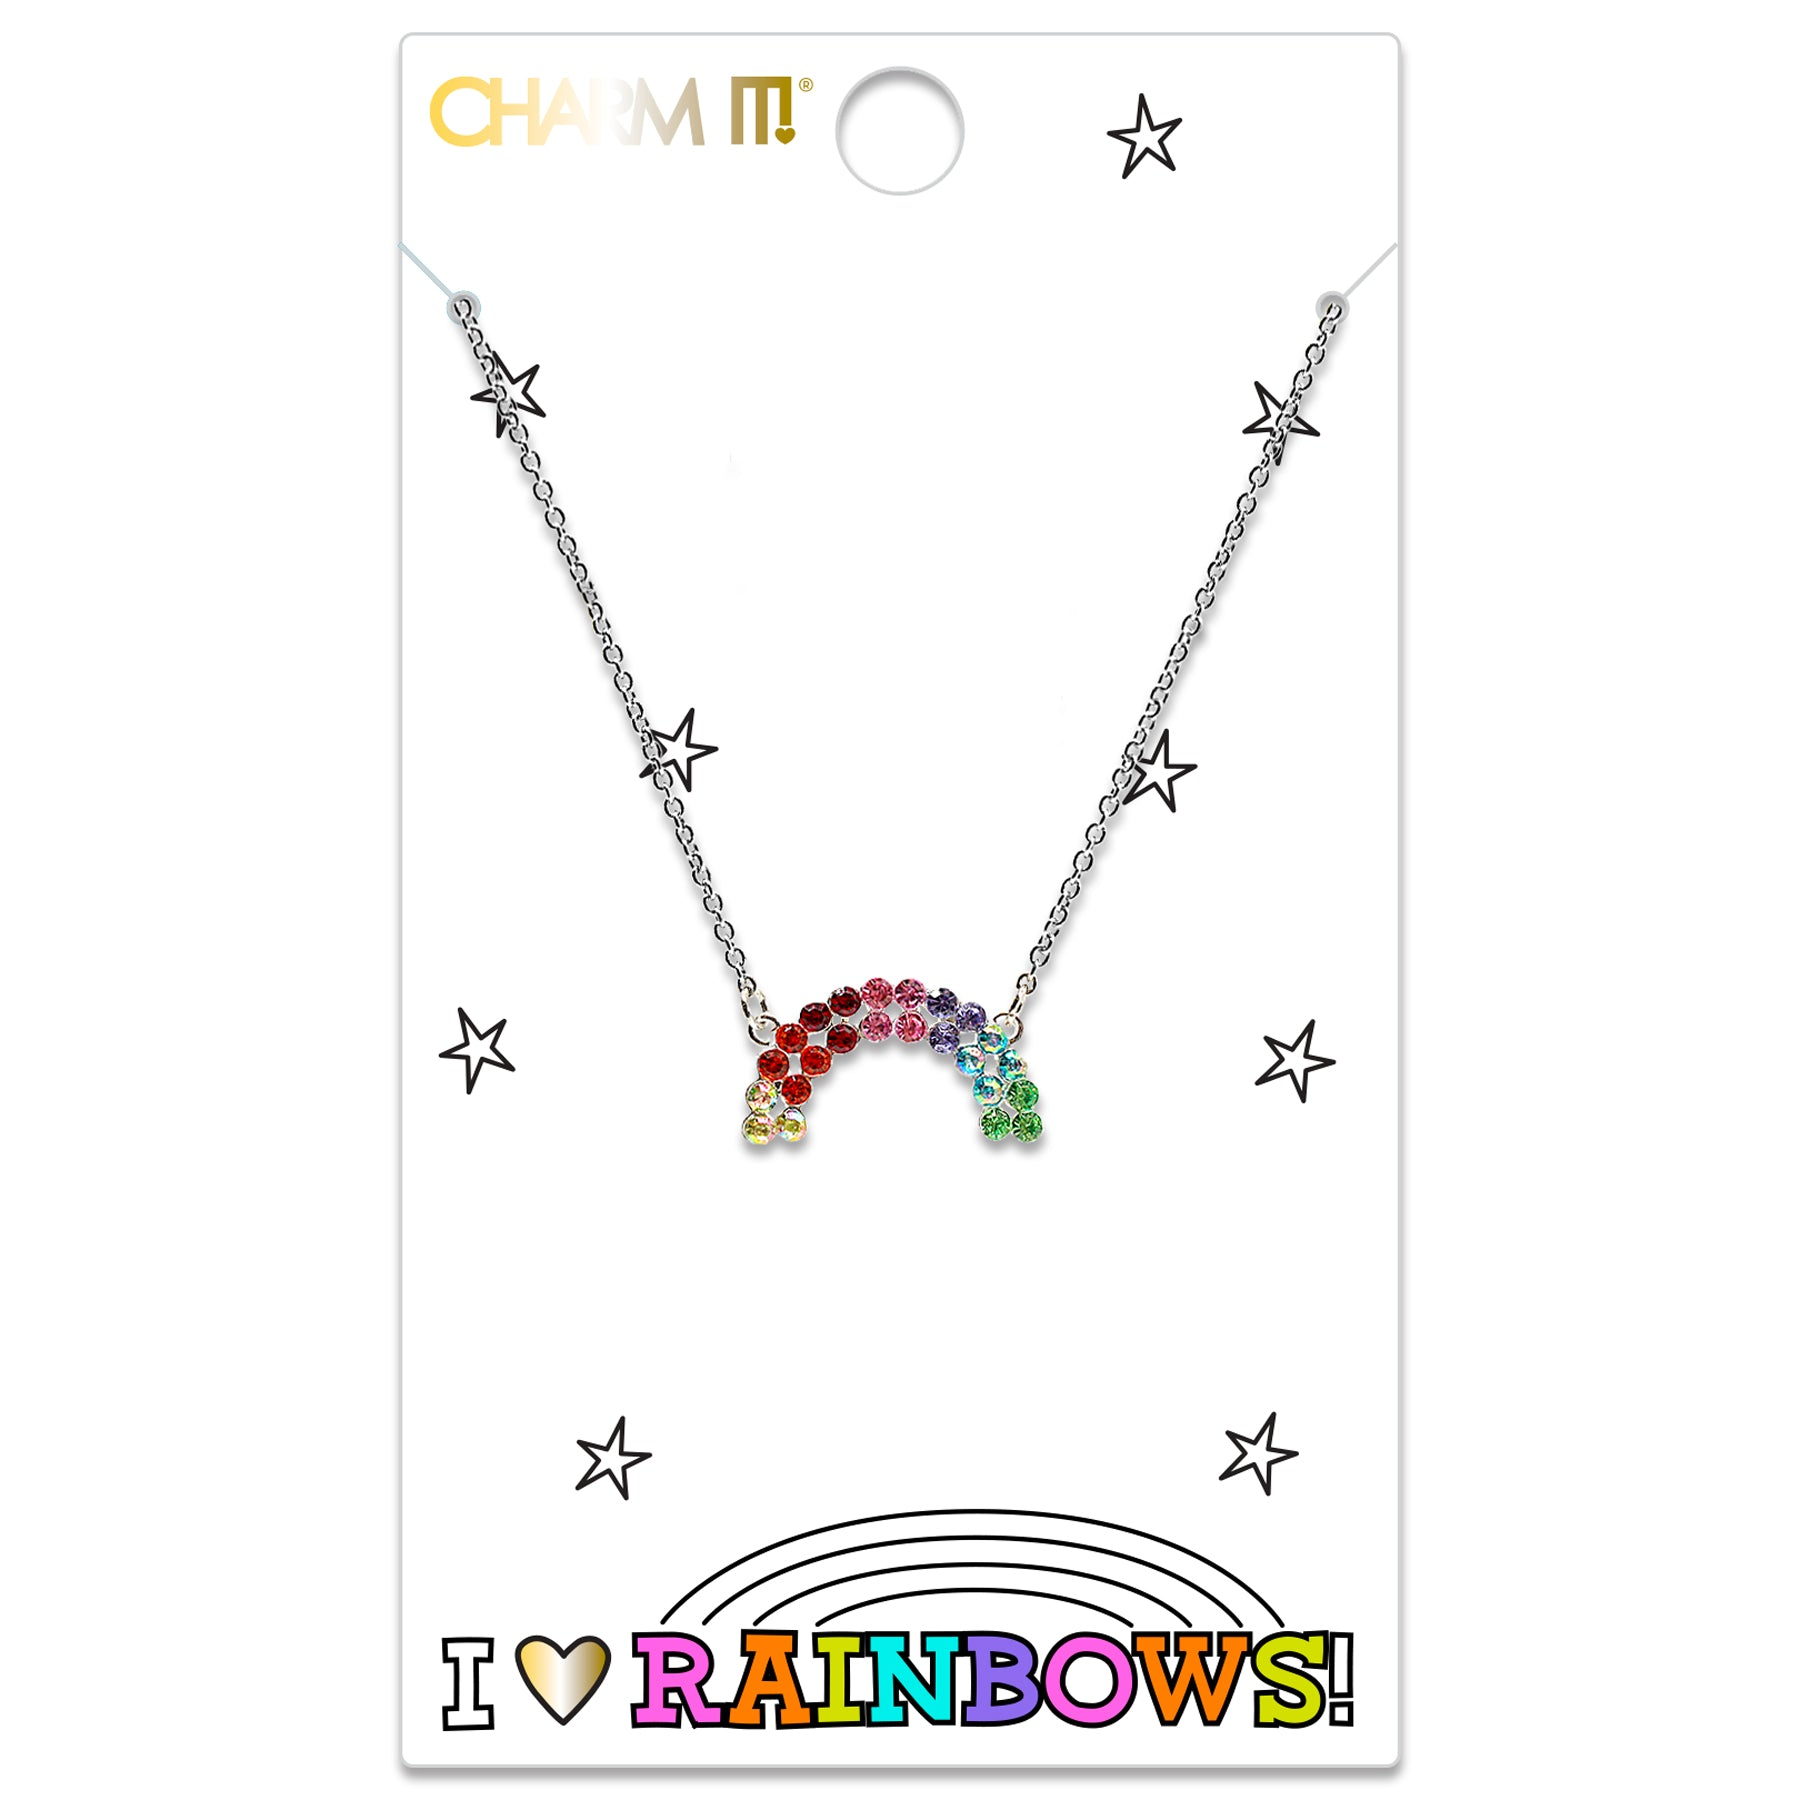 CHARM IT! Rhinestone Rainbow Necklace